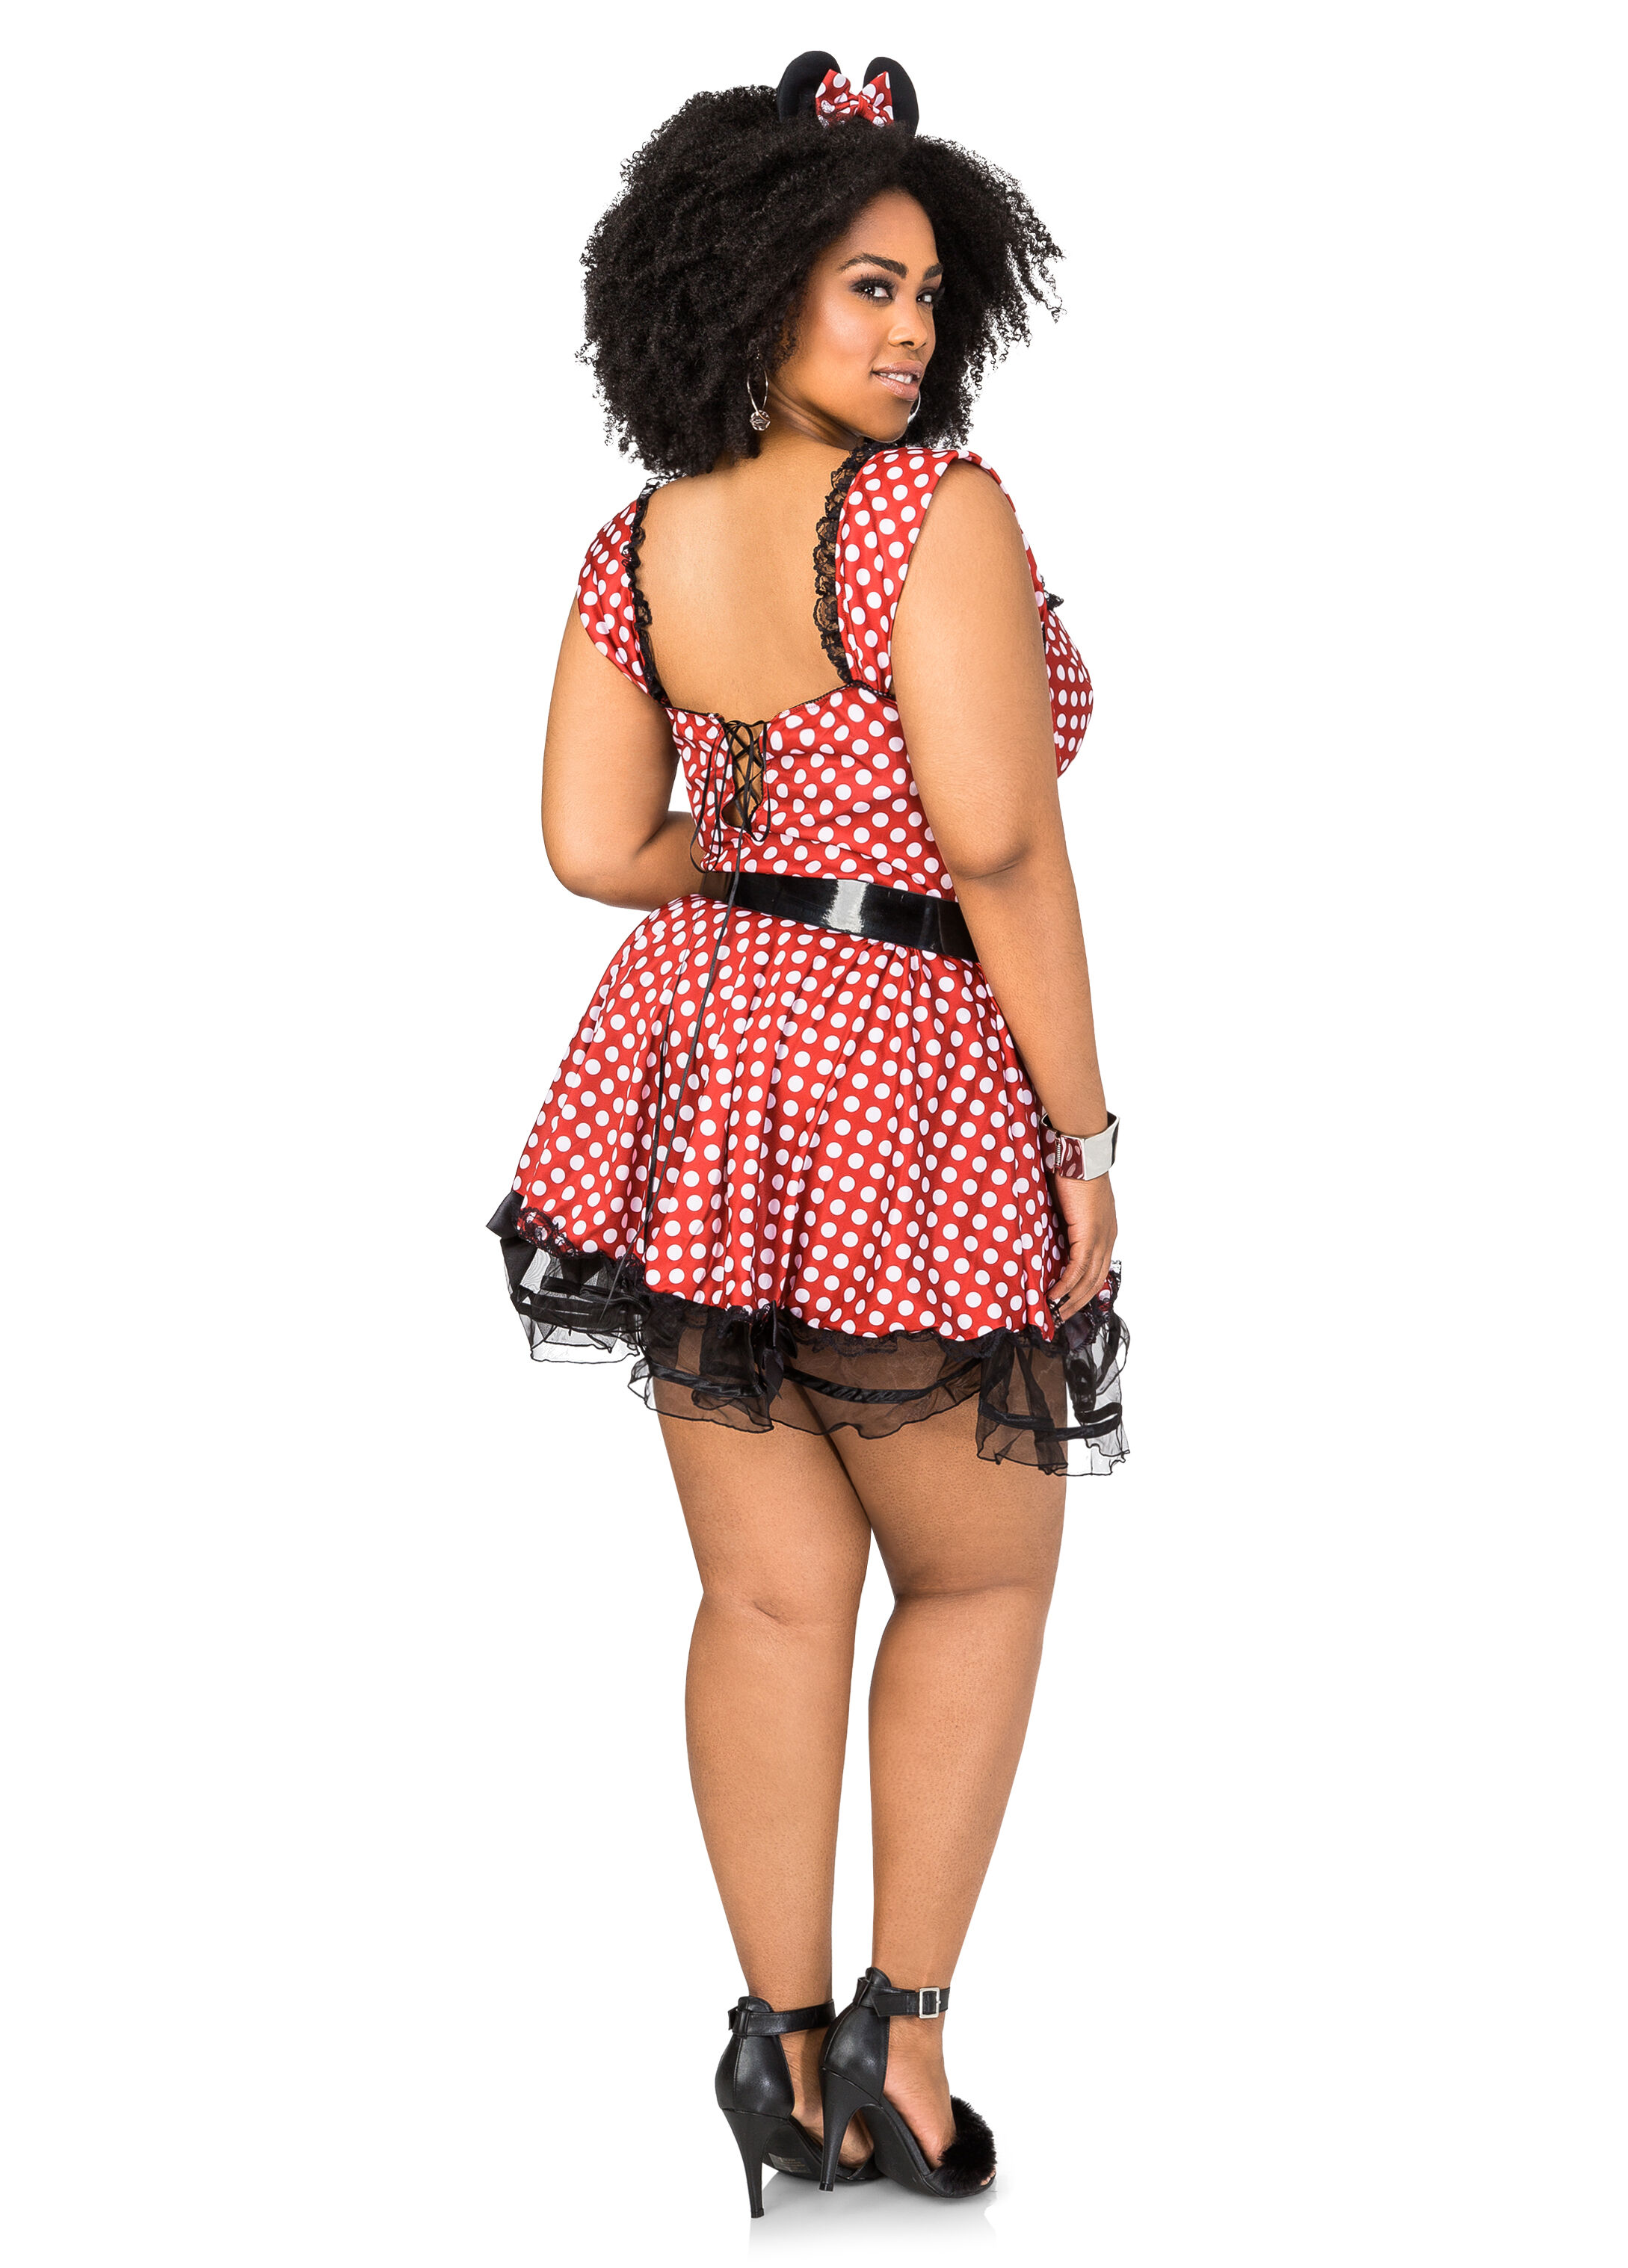 Missy Mouse Plus Size Costume